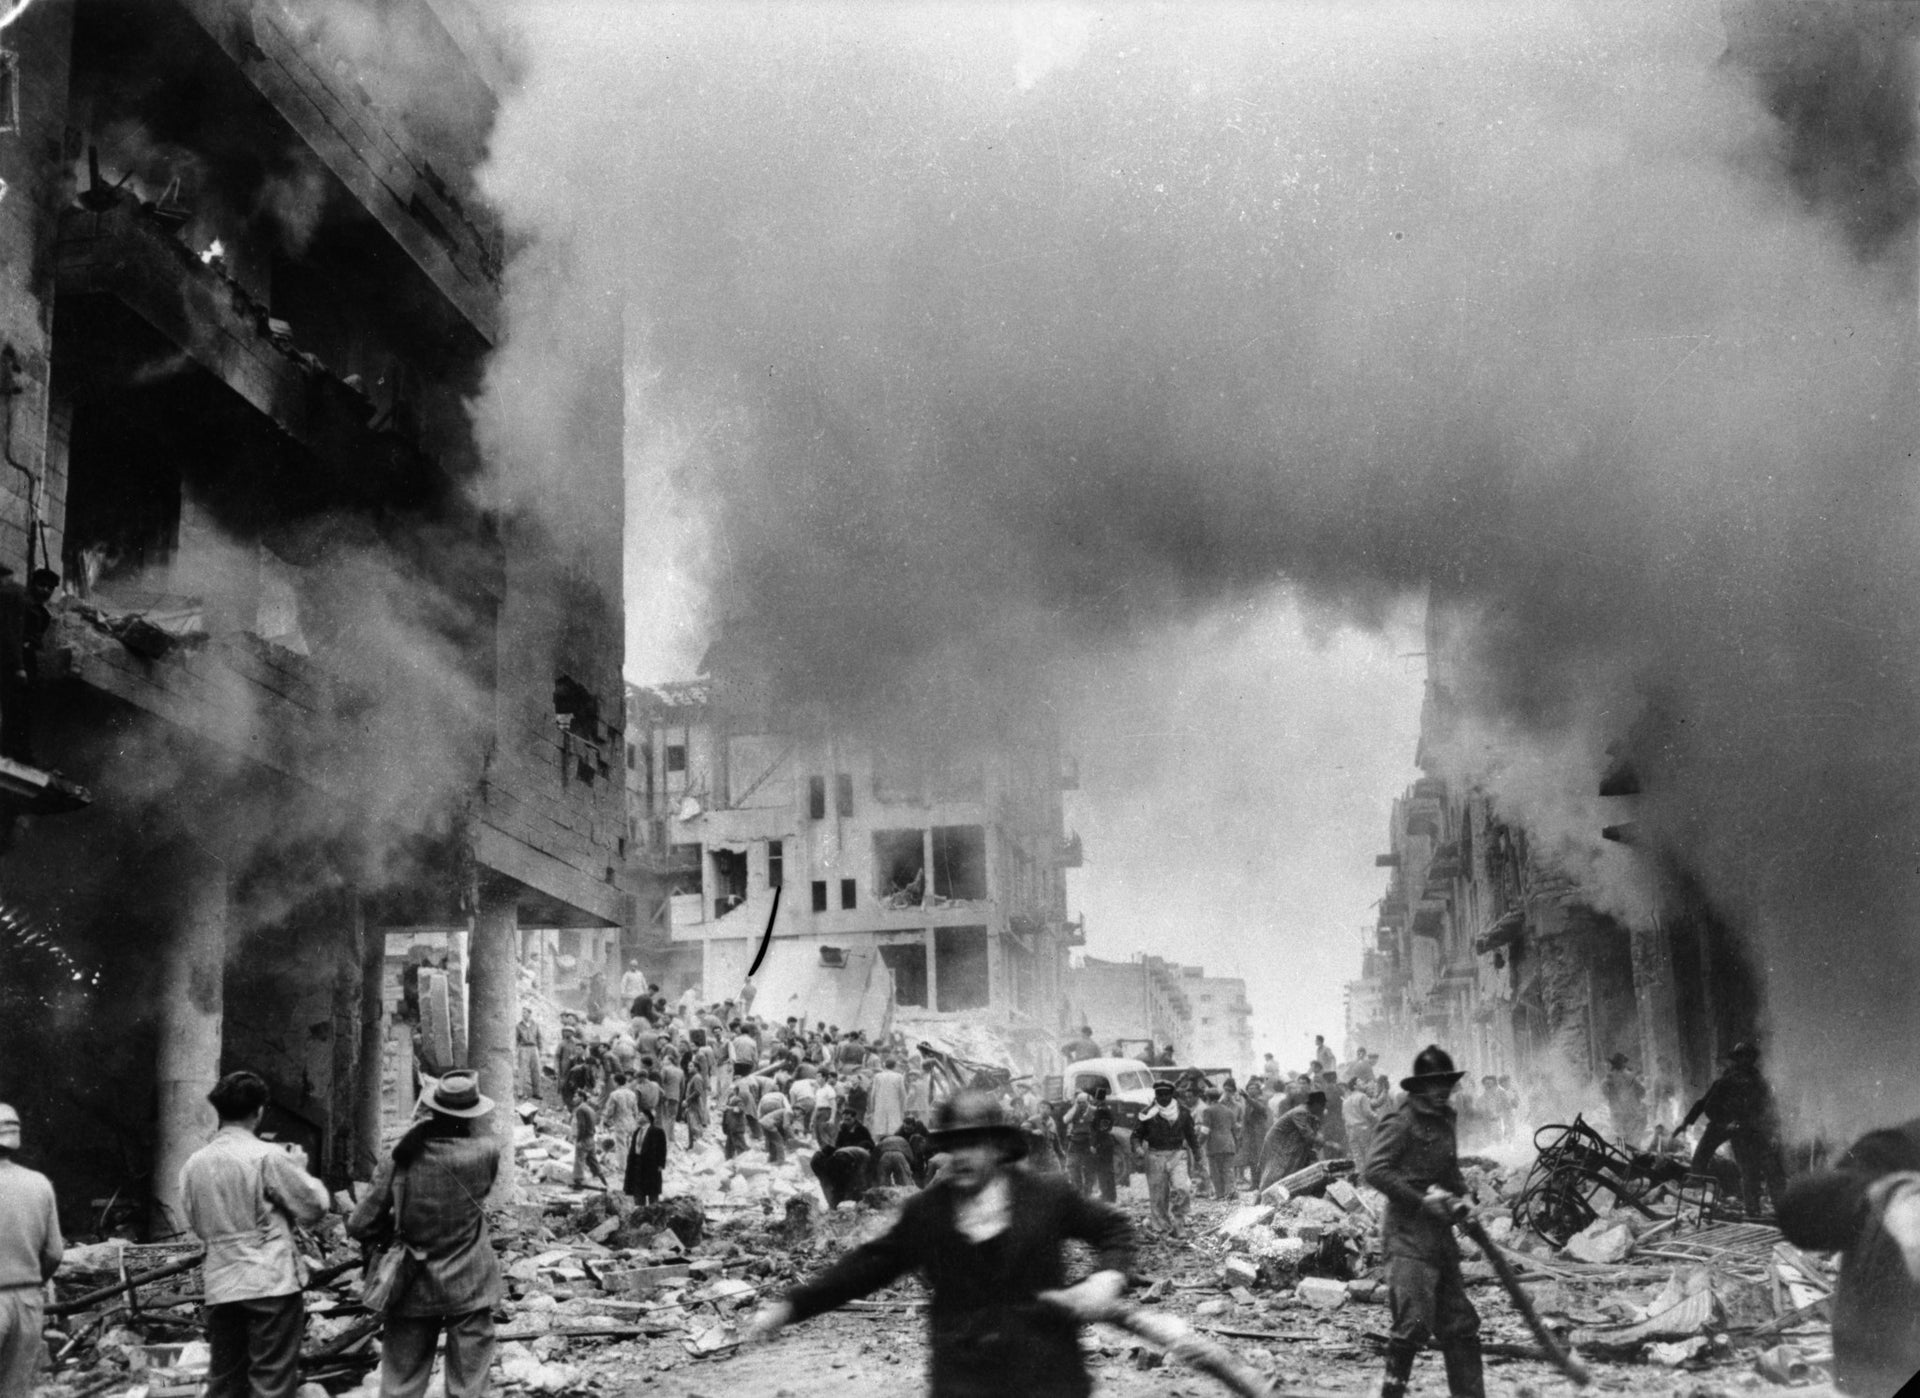 The terrible aftermath of a bomb attack on Ben-Yehuda Street in 1948.